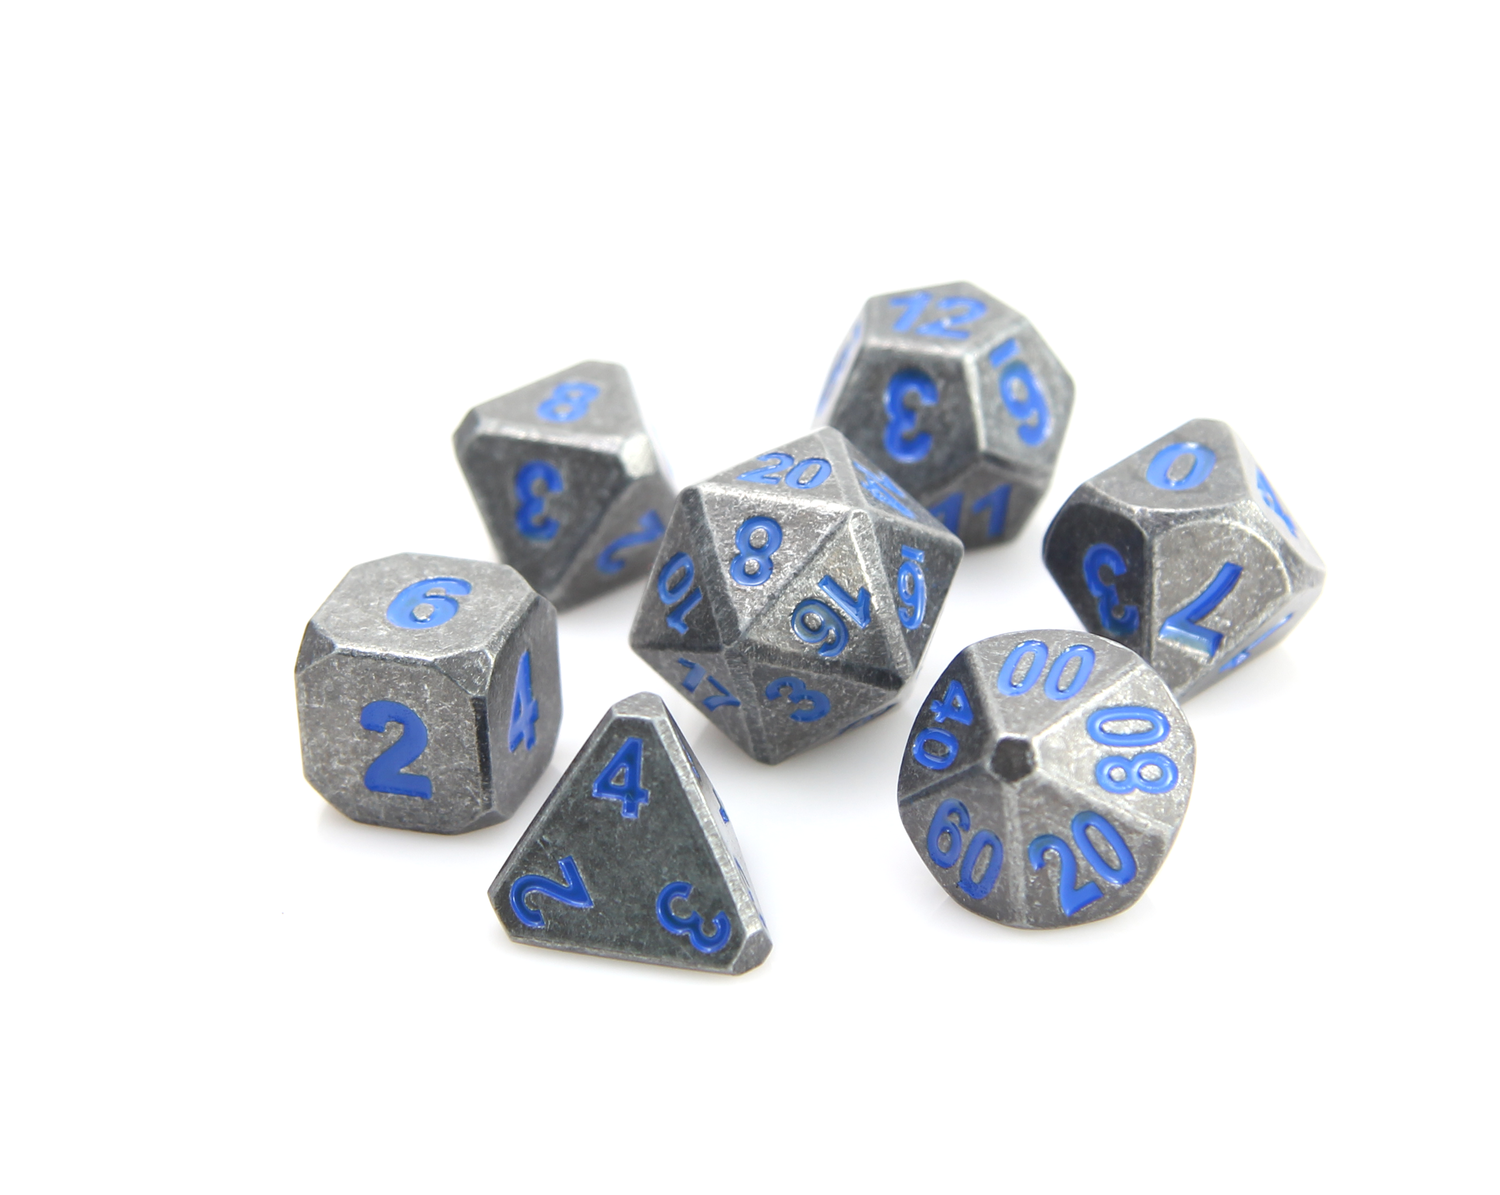 Forge Dice - Raw Steel w/ Paragon Blue